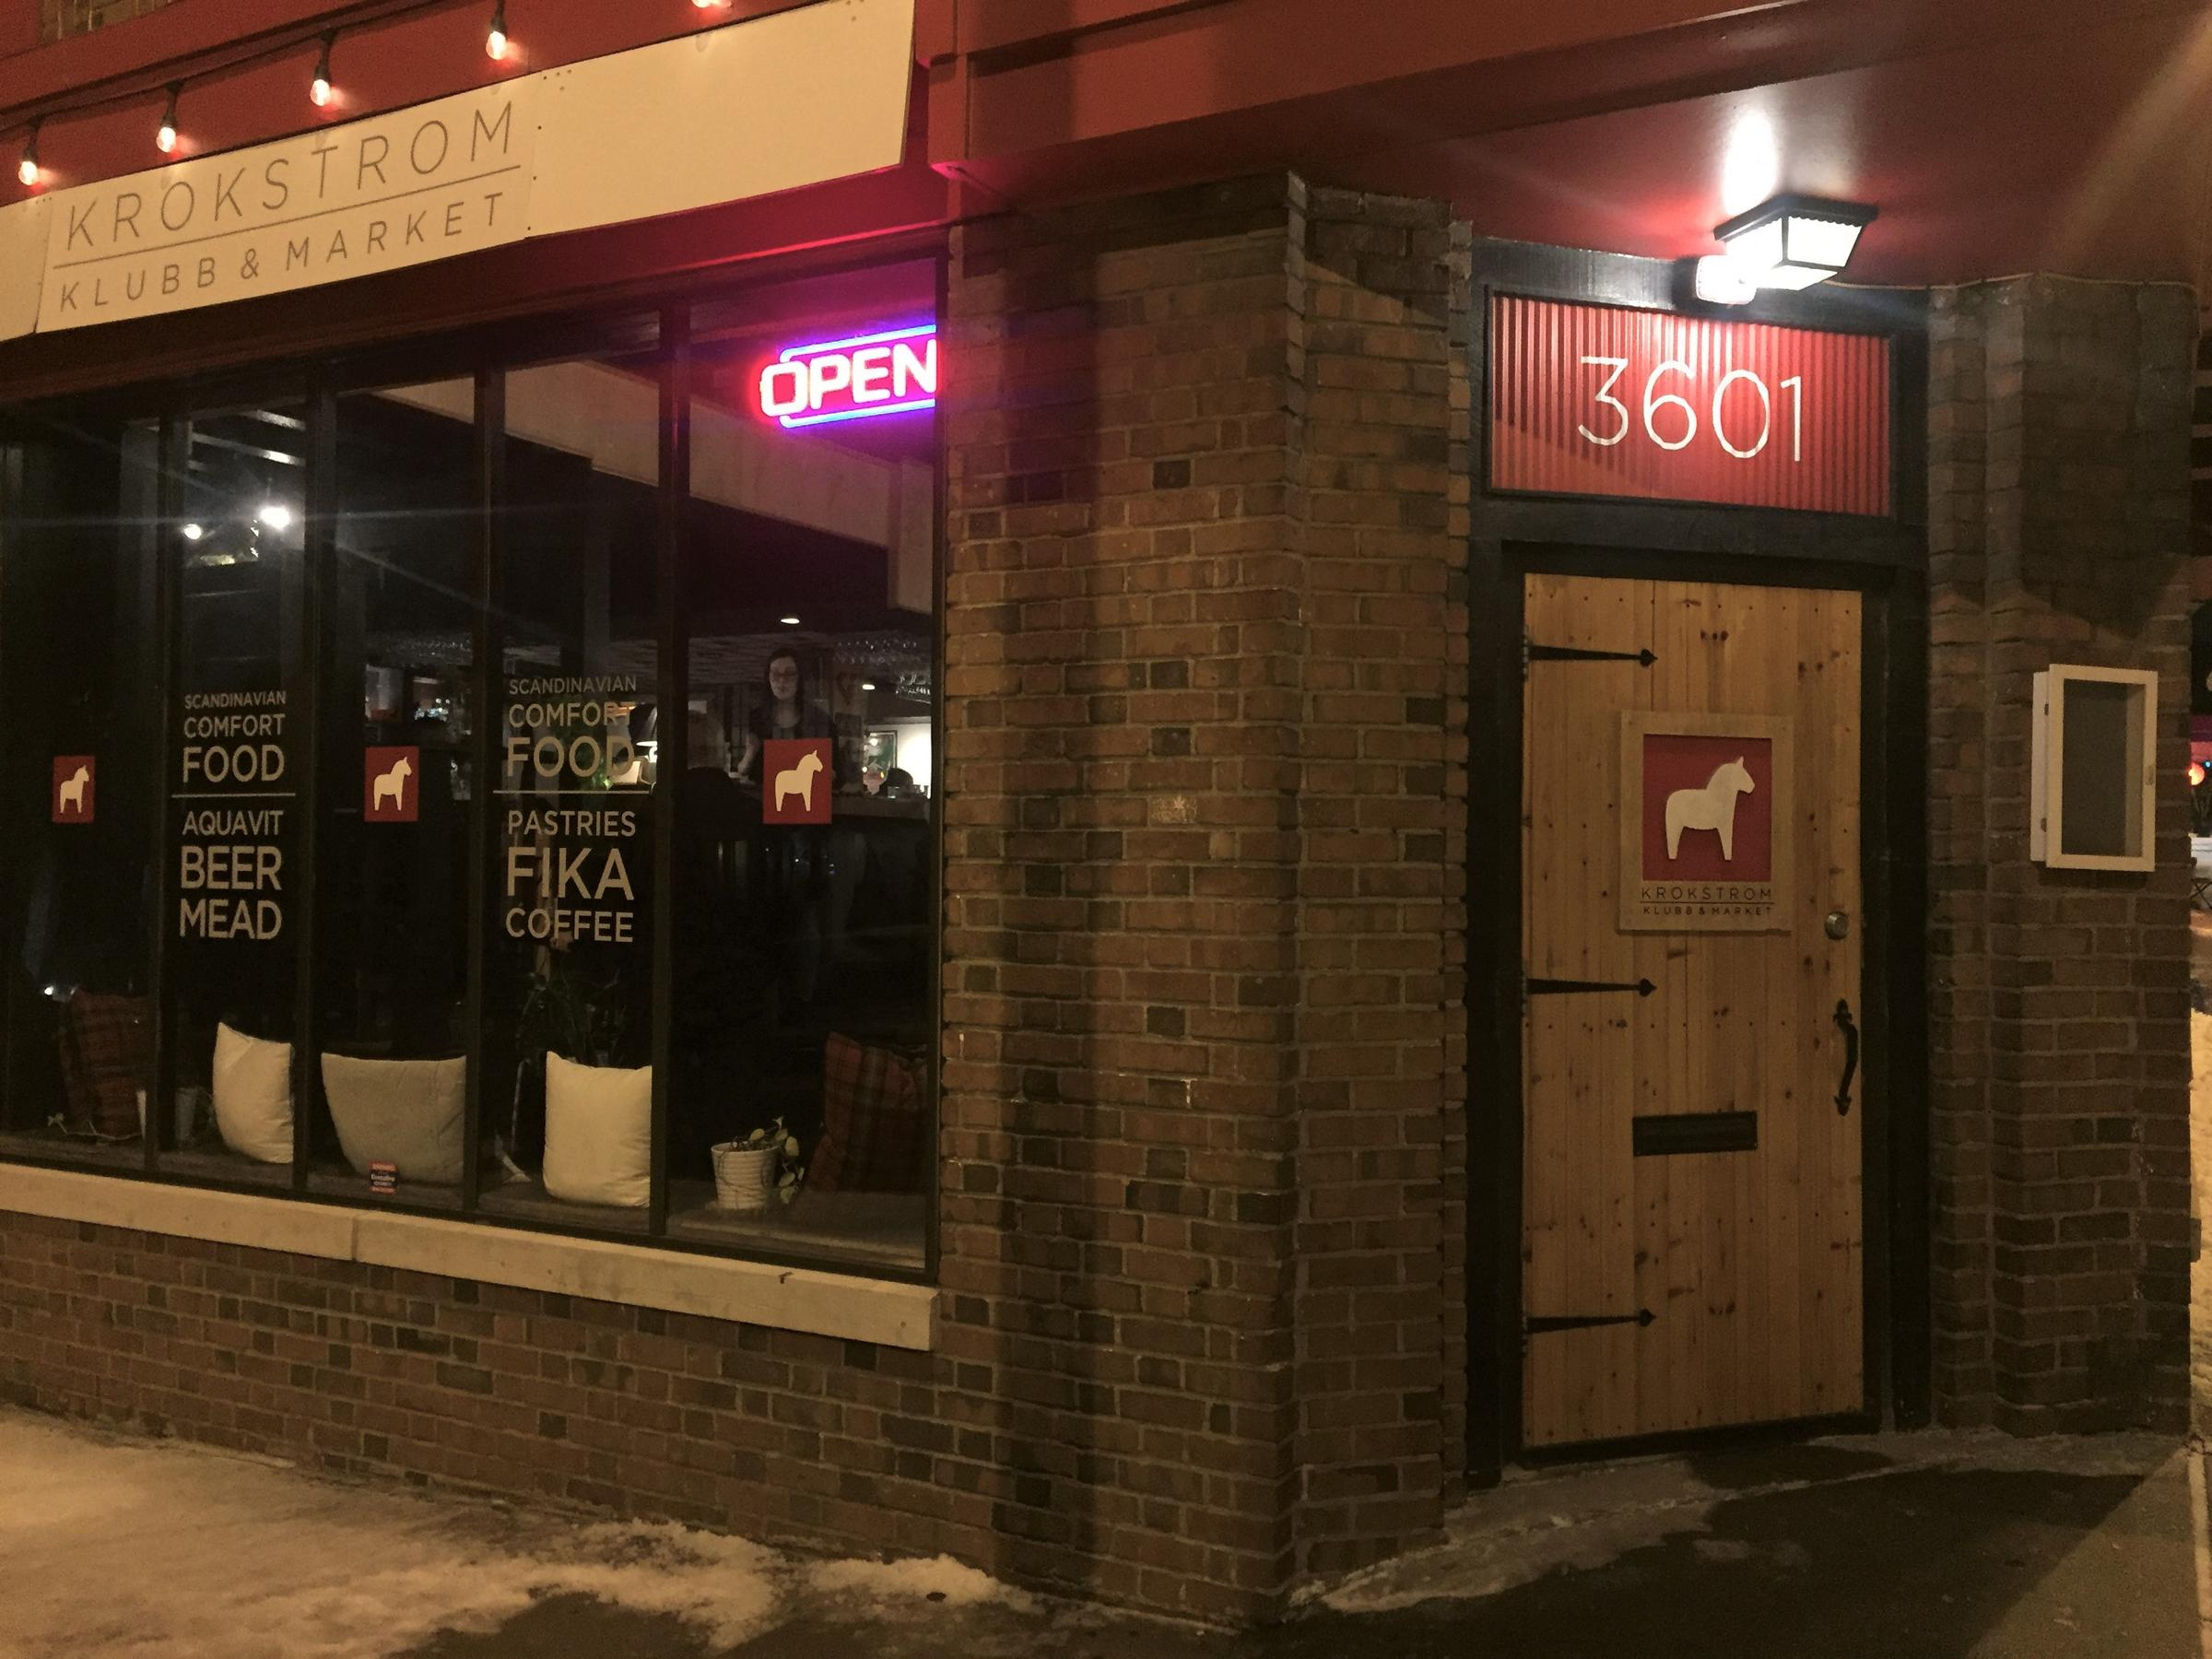 Some Kansas City Restaurants Are Struggling After Unusually